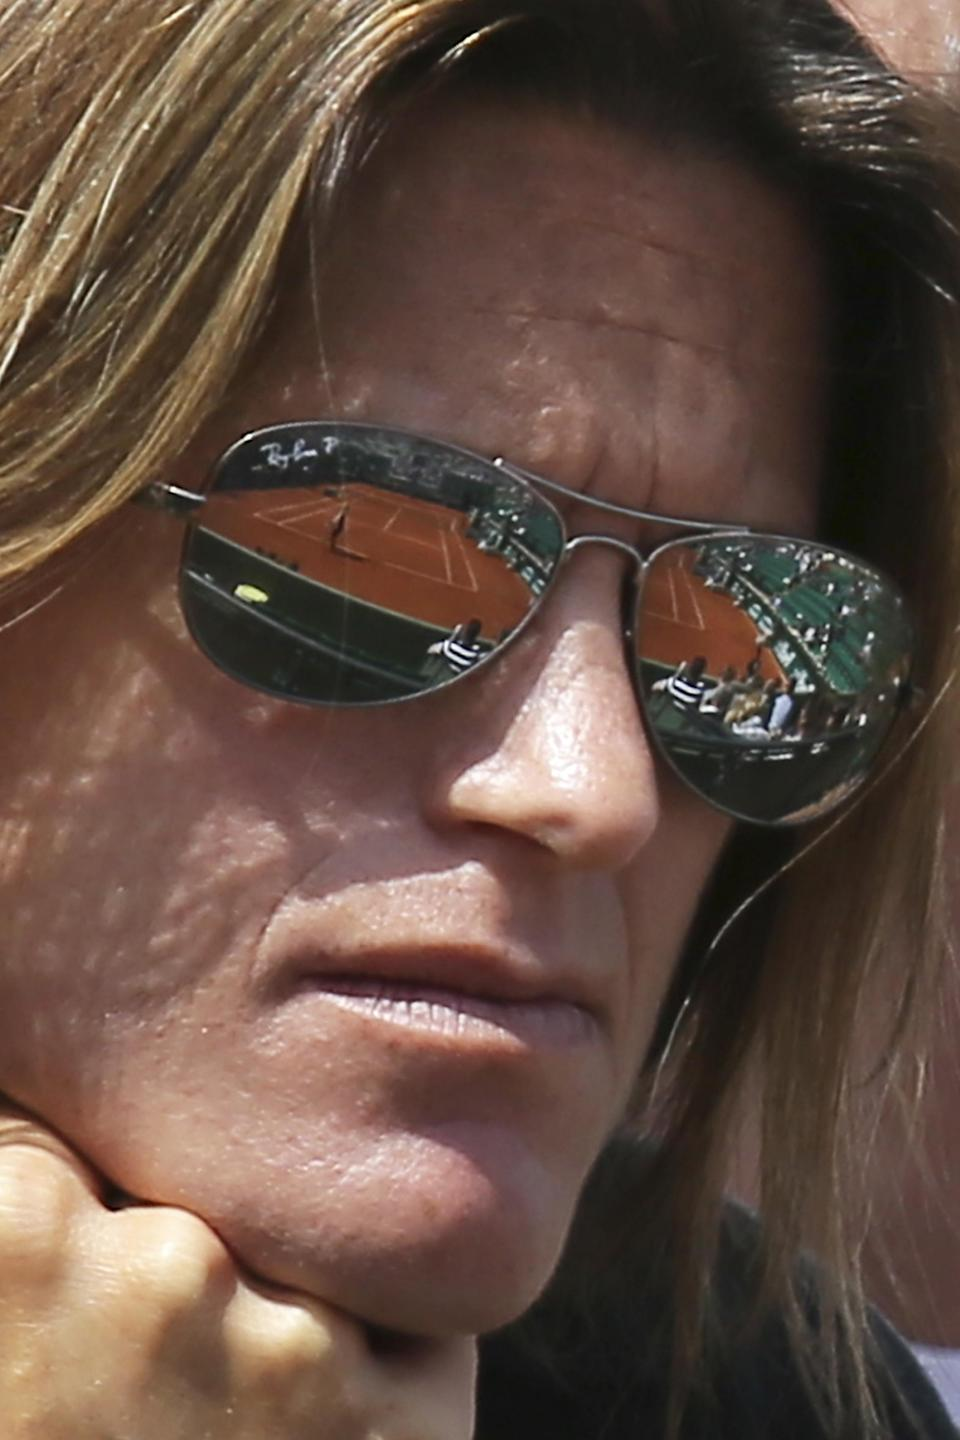 Suzanne Lenglen court is reflected in the sunglasses of Amelie Mauresmo of France who coaches Britain's Andy Murray in the third round match of the French Open tennis tournament against Australia's Nick Kyrgios at the Roland Garros stadium, in Paris, France, Saturday, May 30, 2015. (AP Photo/David Vincent)